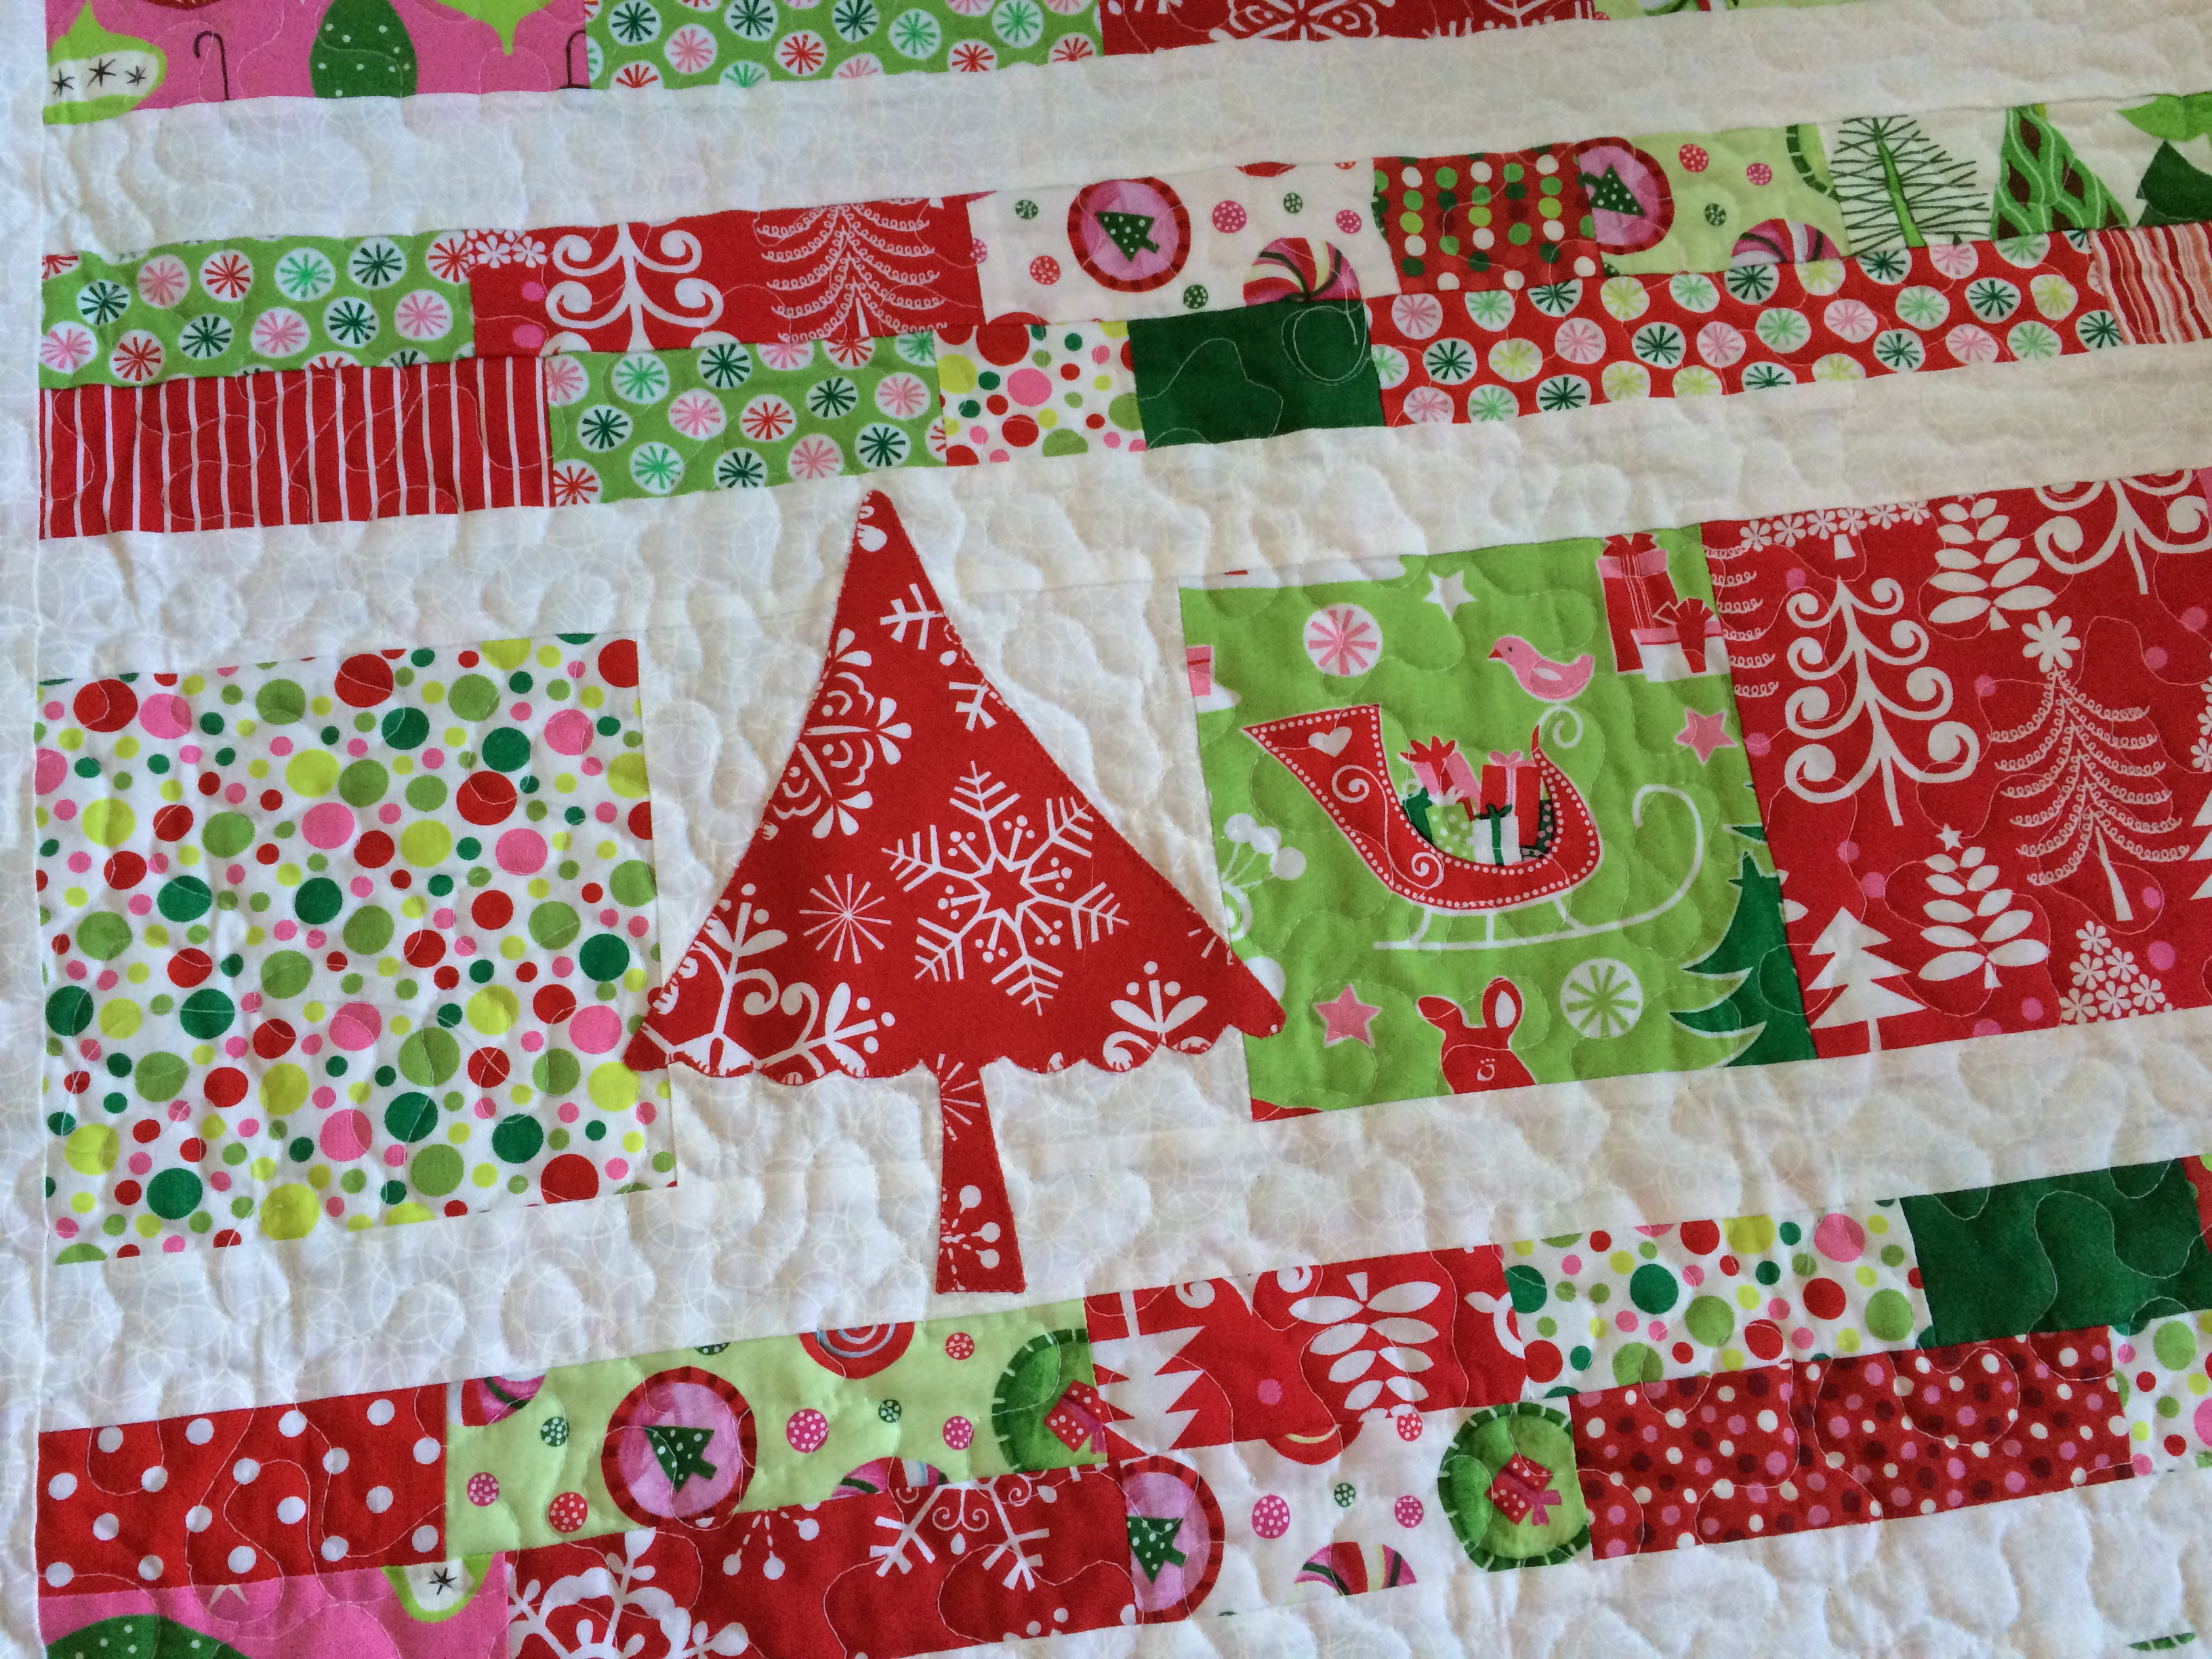 program beautiful members quilts august the for quilters quilt sharing to pine bring people their show this several what was trunk belt christmas asked frances with meeting a